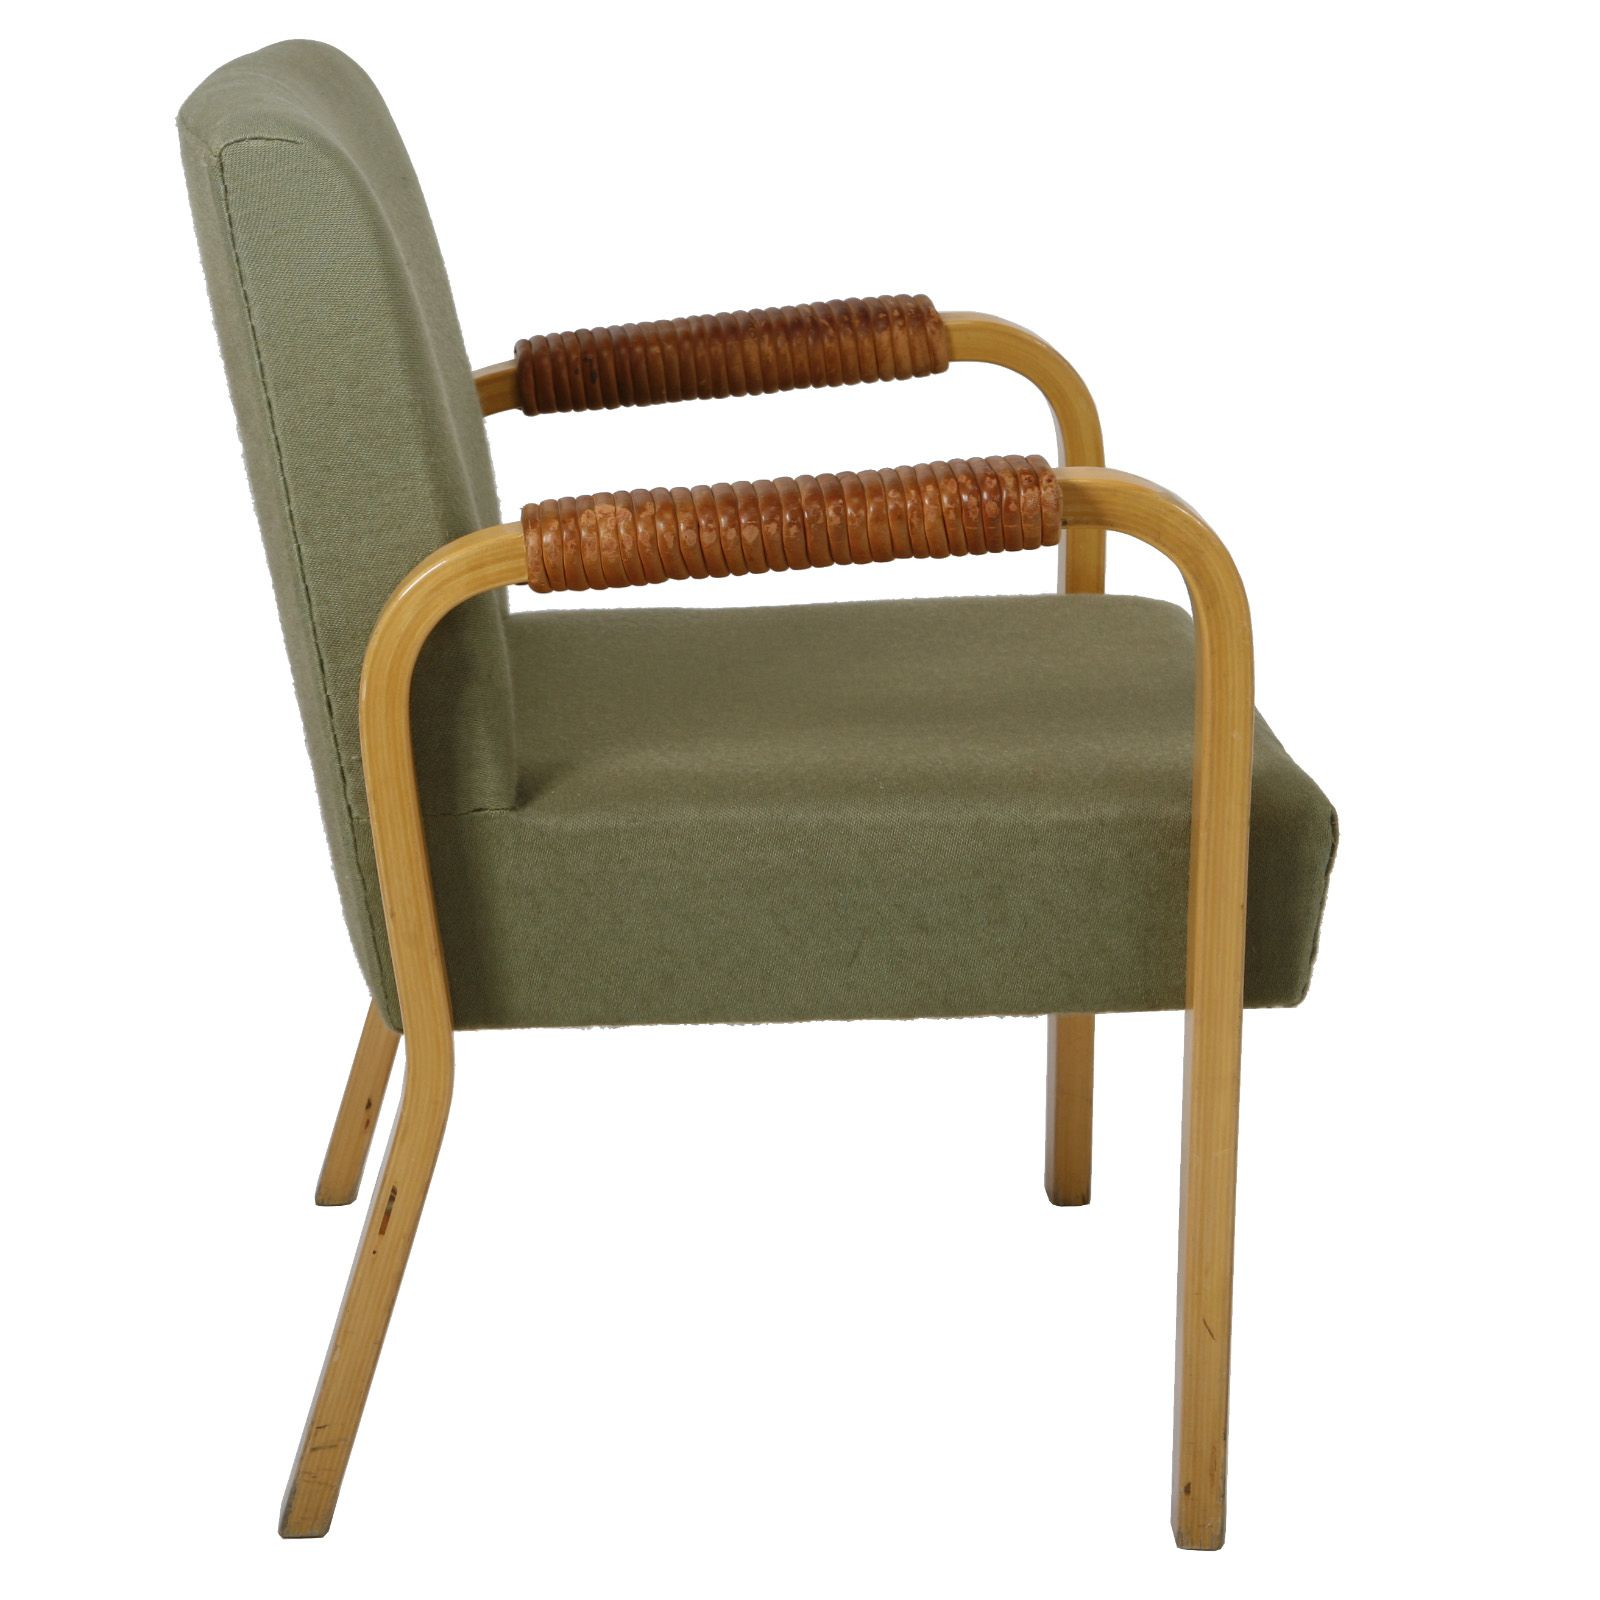 Alvar aalto bent birch and leather armchair for artek for Alvar aalto muebles